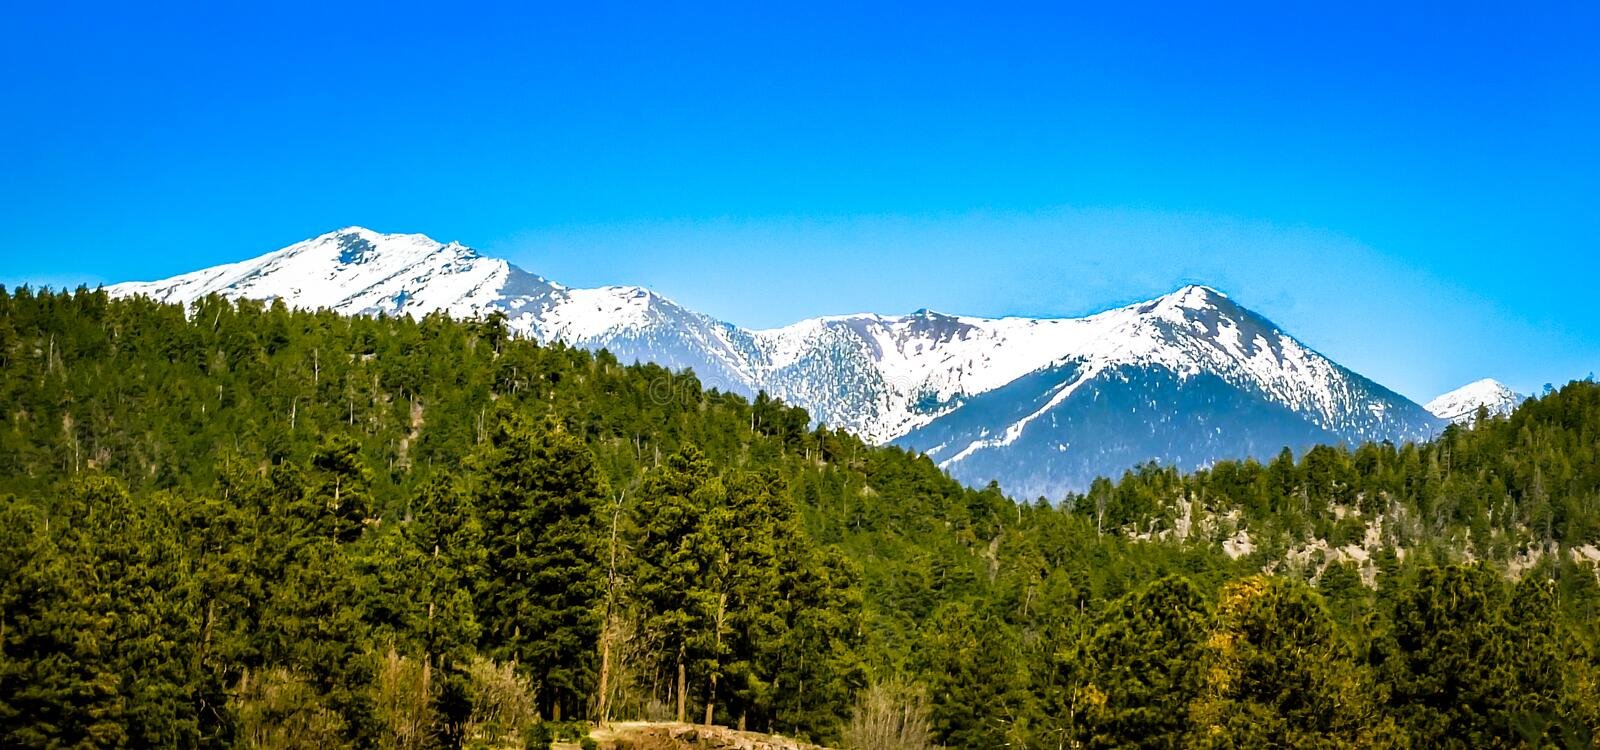 San Francisco Peaks Flagstaff Arizona. Snow covered San Francisco Peaks, situated just outside of Flagstaff Arizona, close to the South Rim of the Grand Canyon stock photography